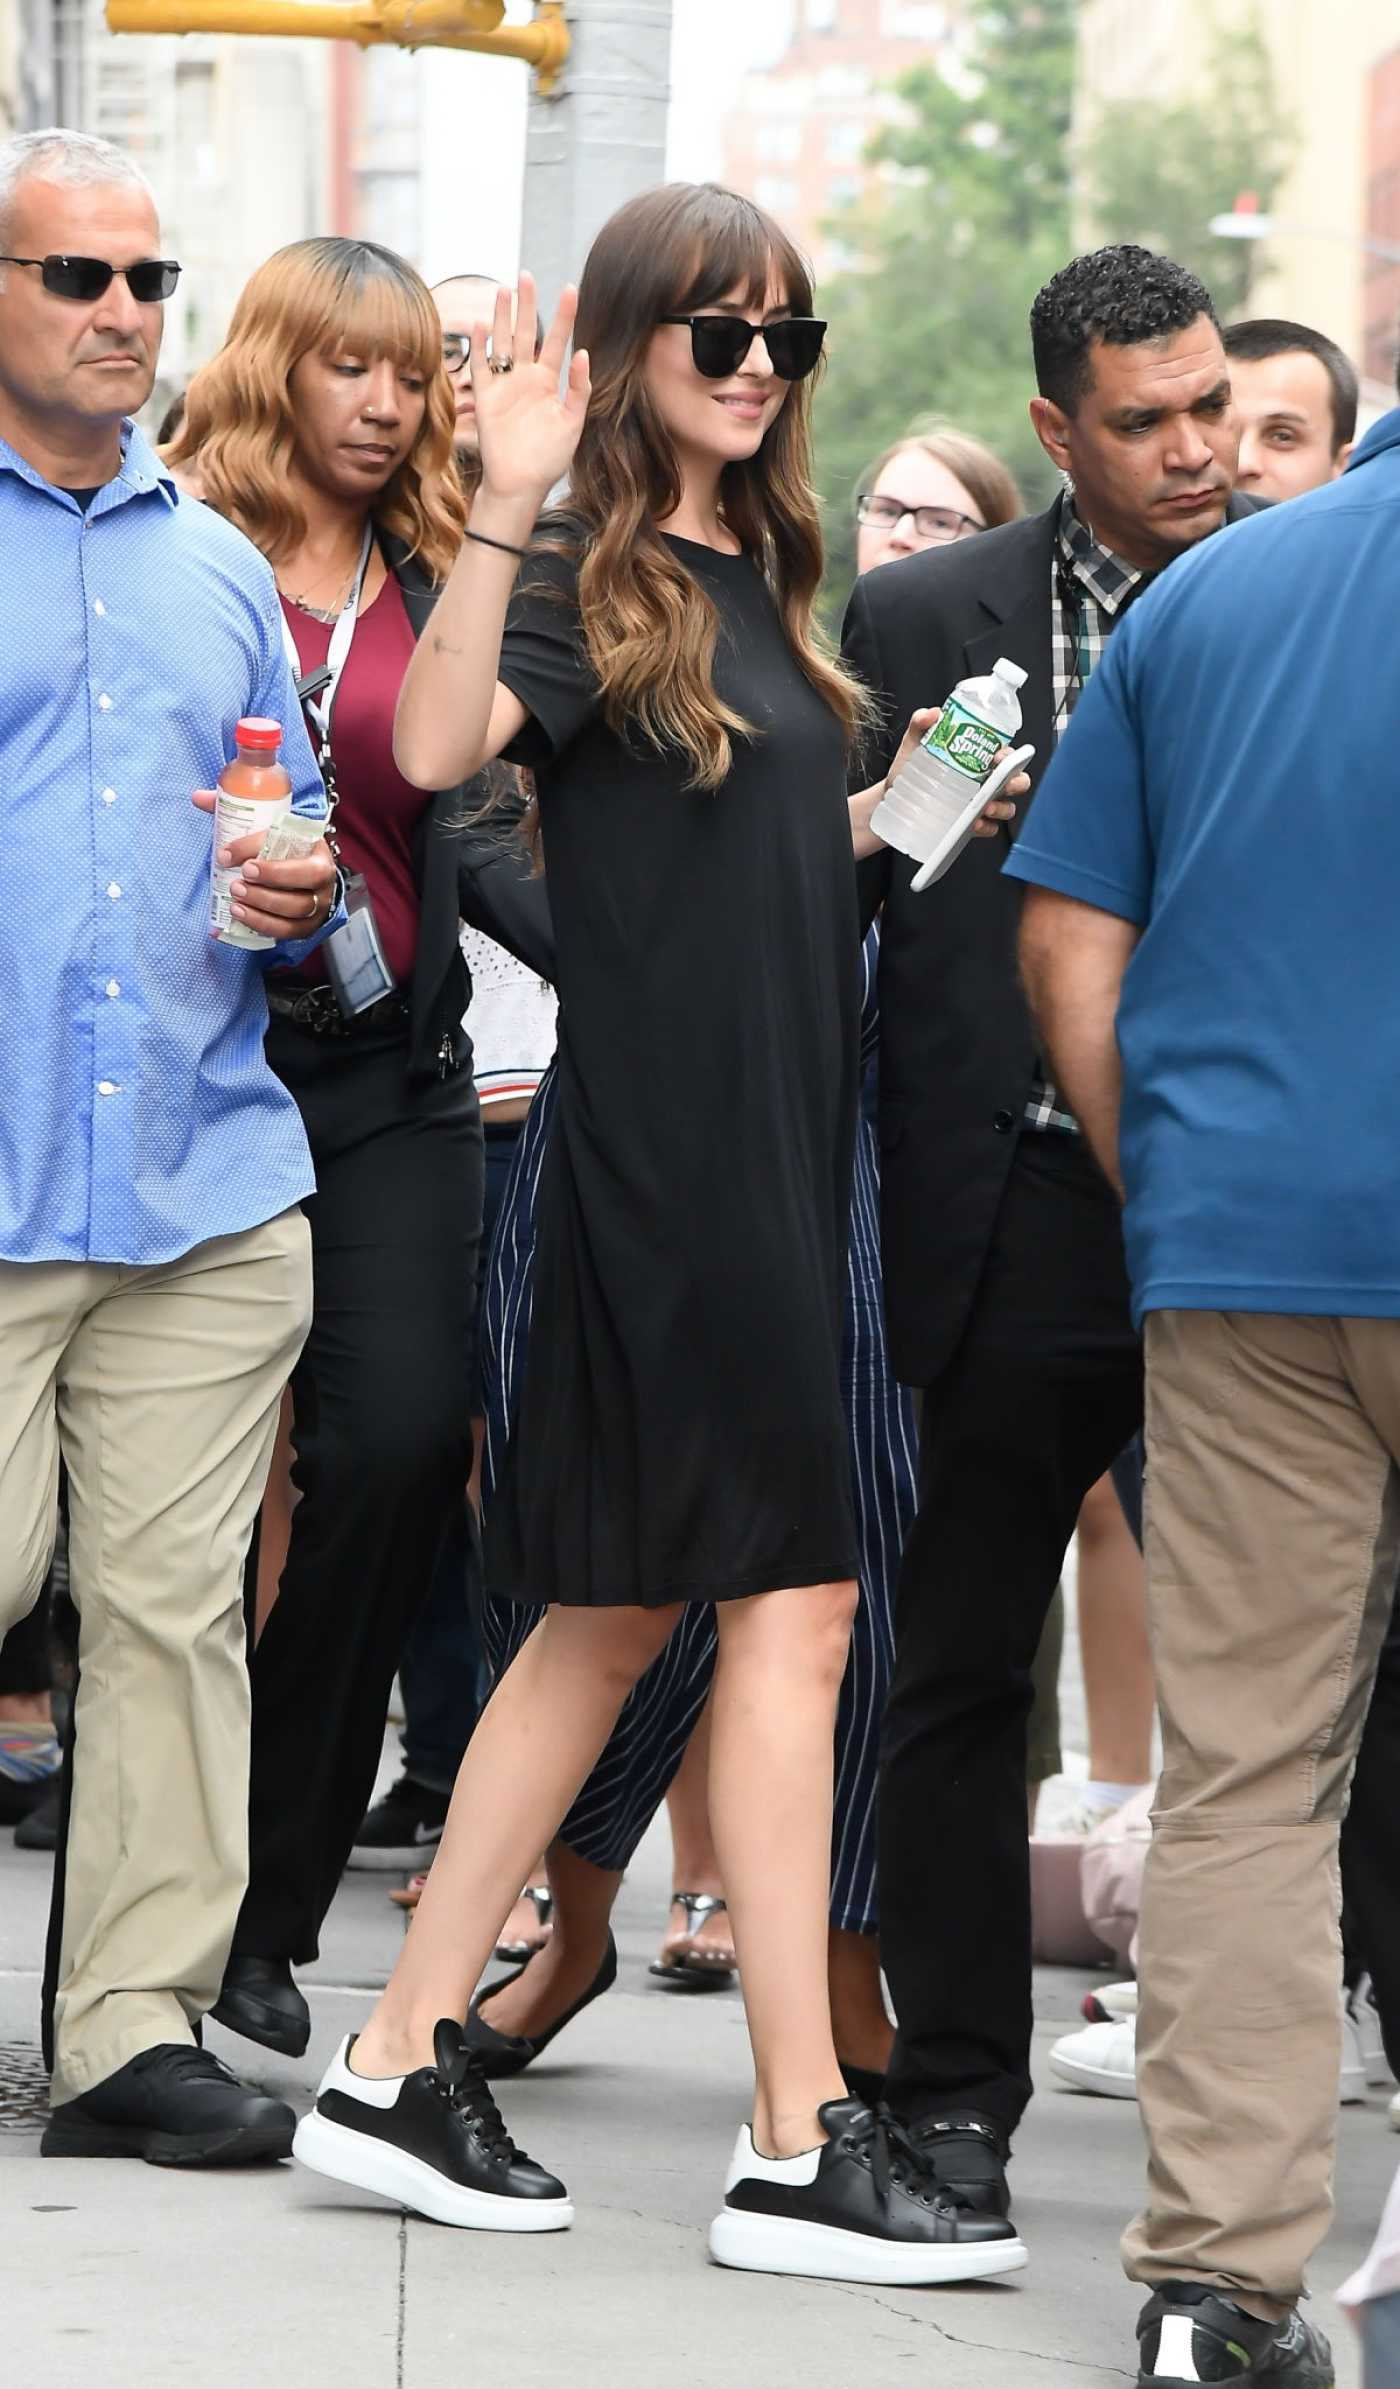 Dakota Johnson in a Black Dress Leaves AOL Build Studios in New York City 08/07/2019